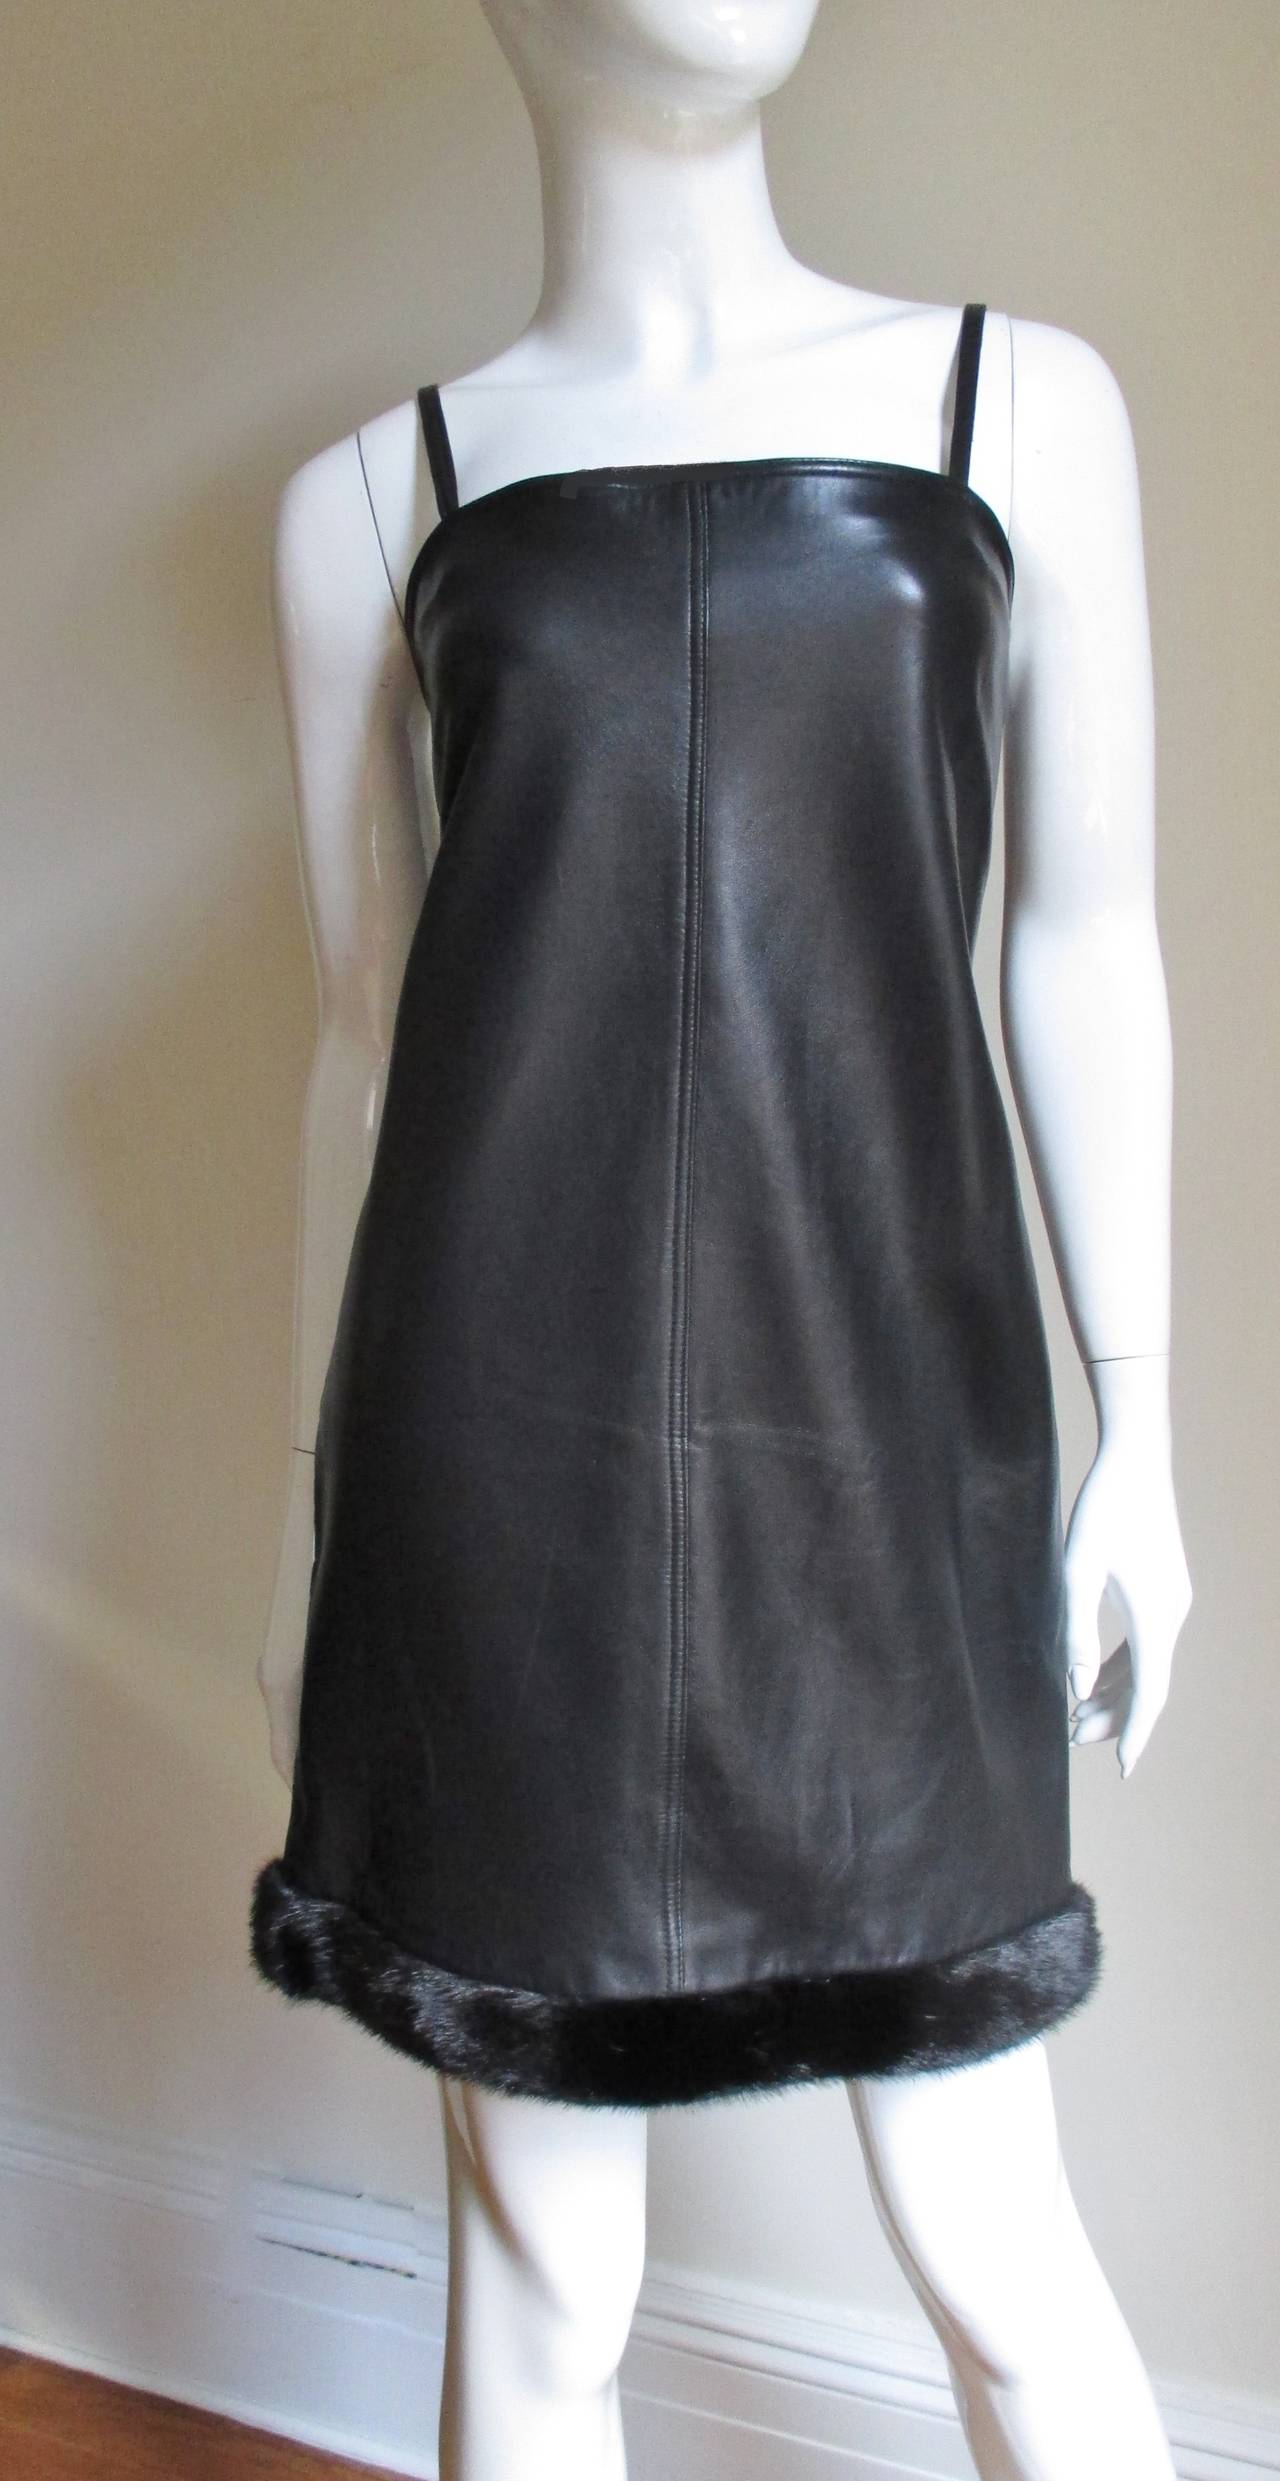 Vintage Gianni Versace Leather Dress with Mink Trim 4